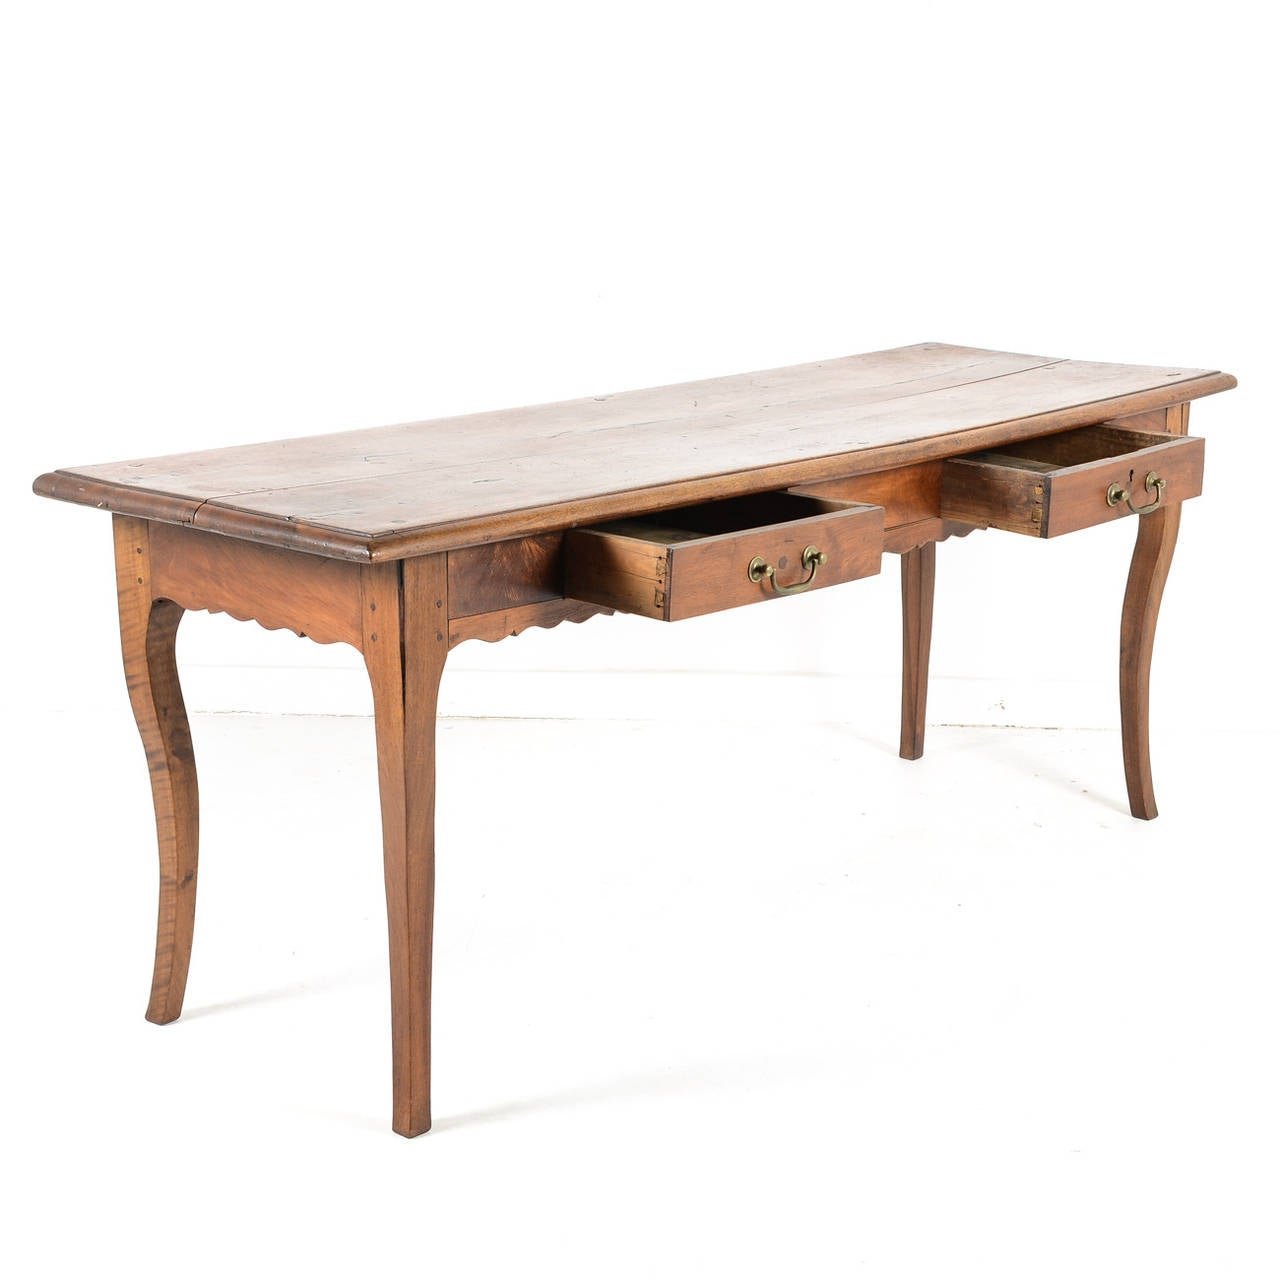 Country French Farm Table 19th Century For Sale at 1stdibs